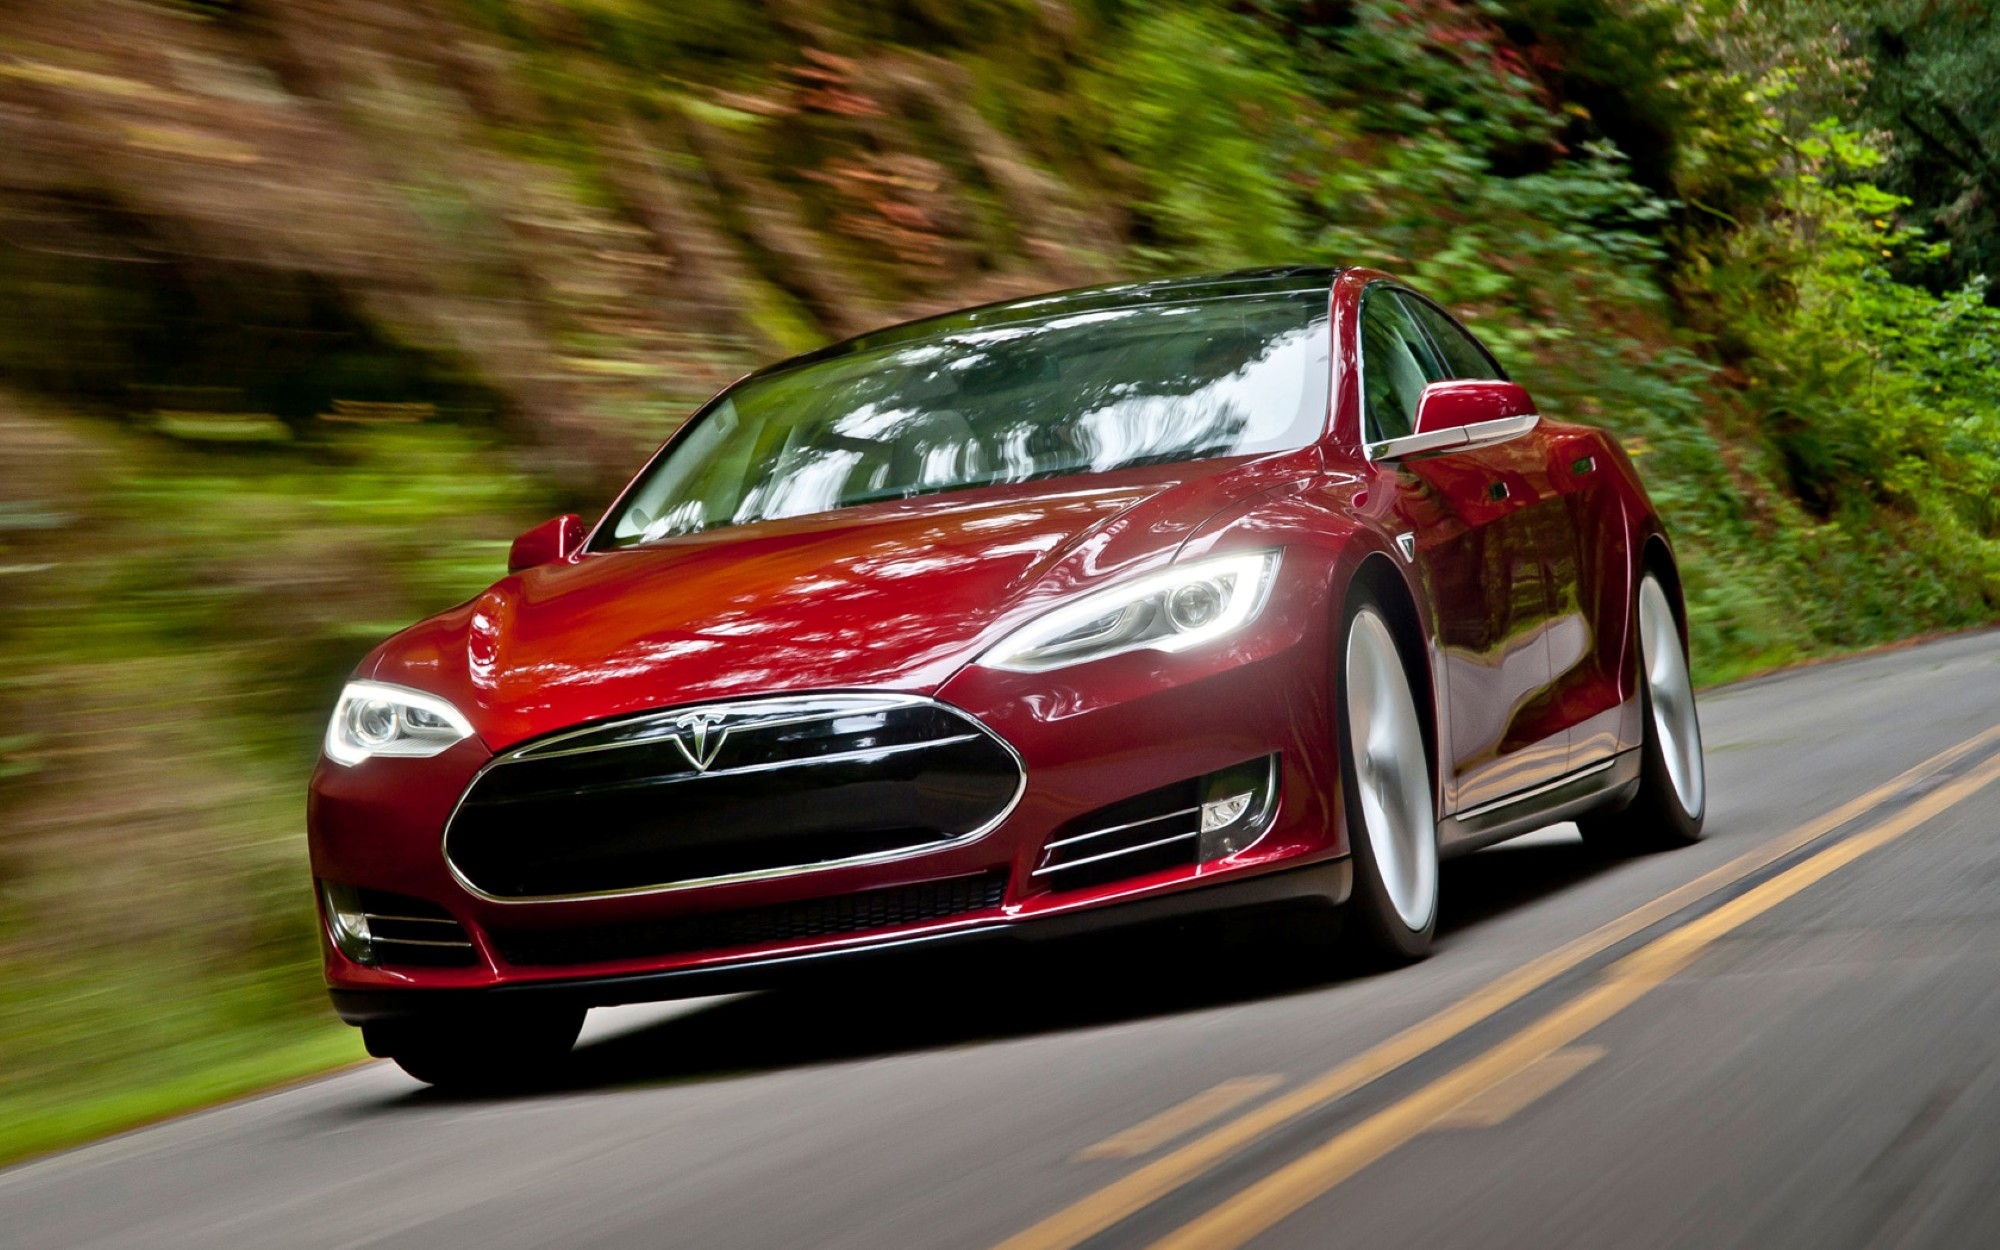 Cars That Start With S >> 2012 Tesla Model S Electric Car Deliveries To Start Today